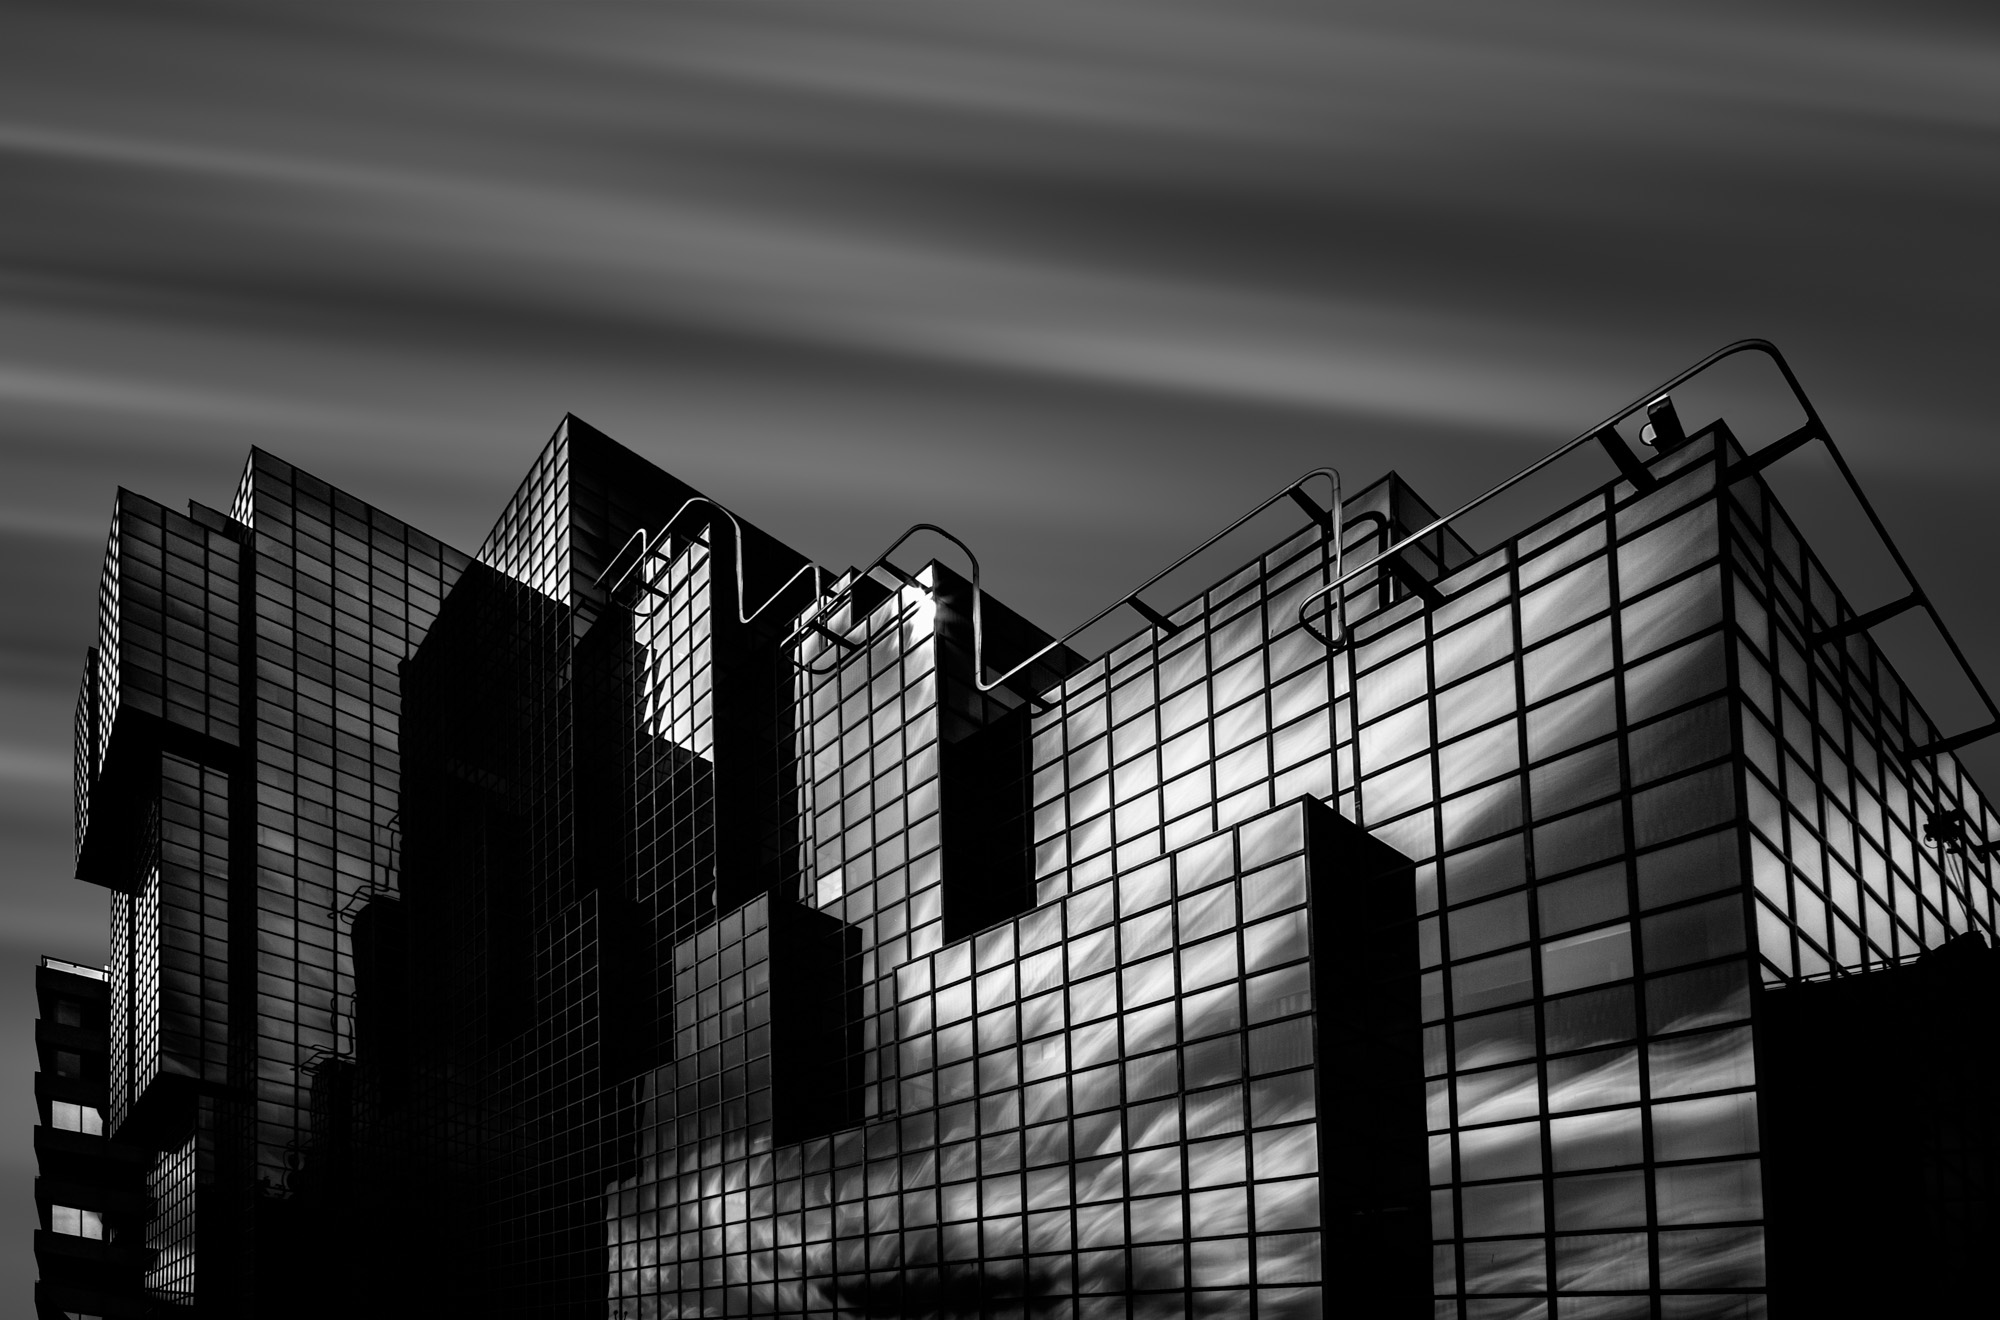 long exposure architecture photograph of modern glass mirrored building in London